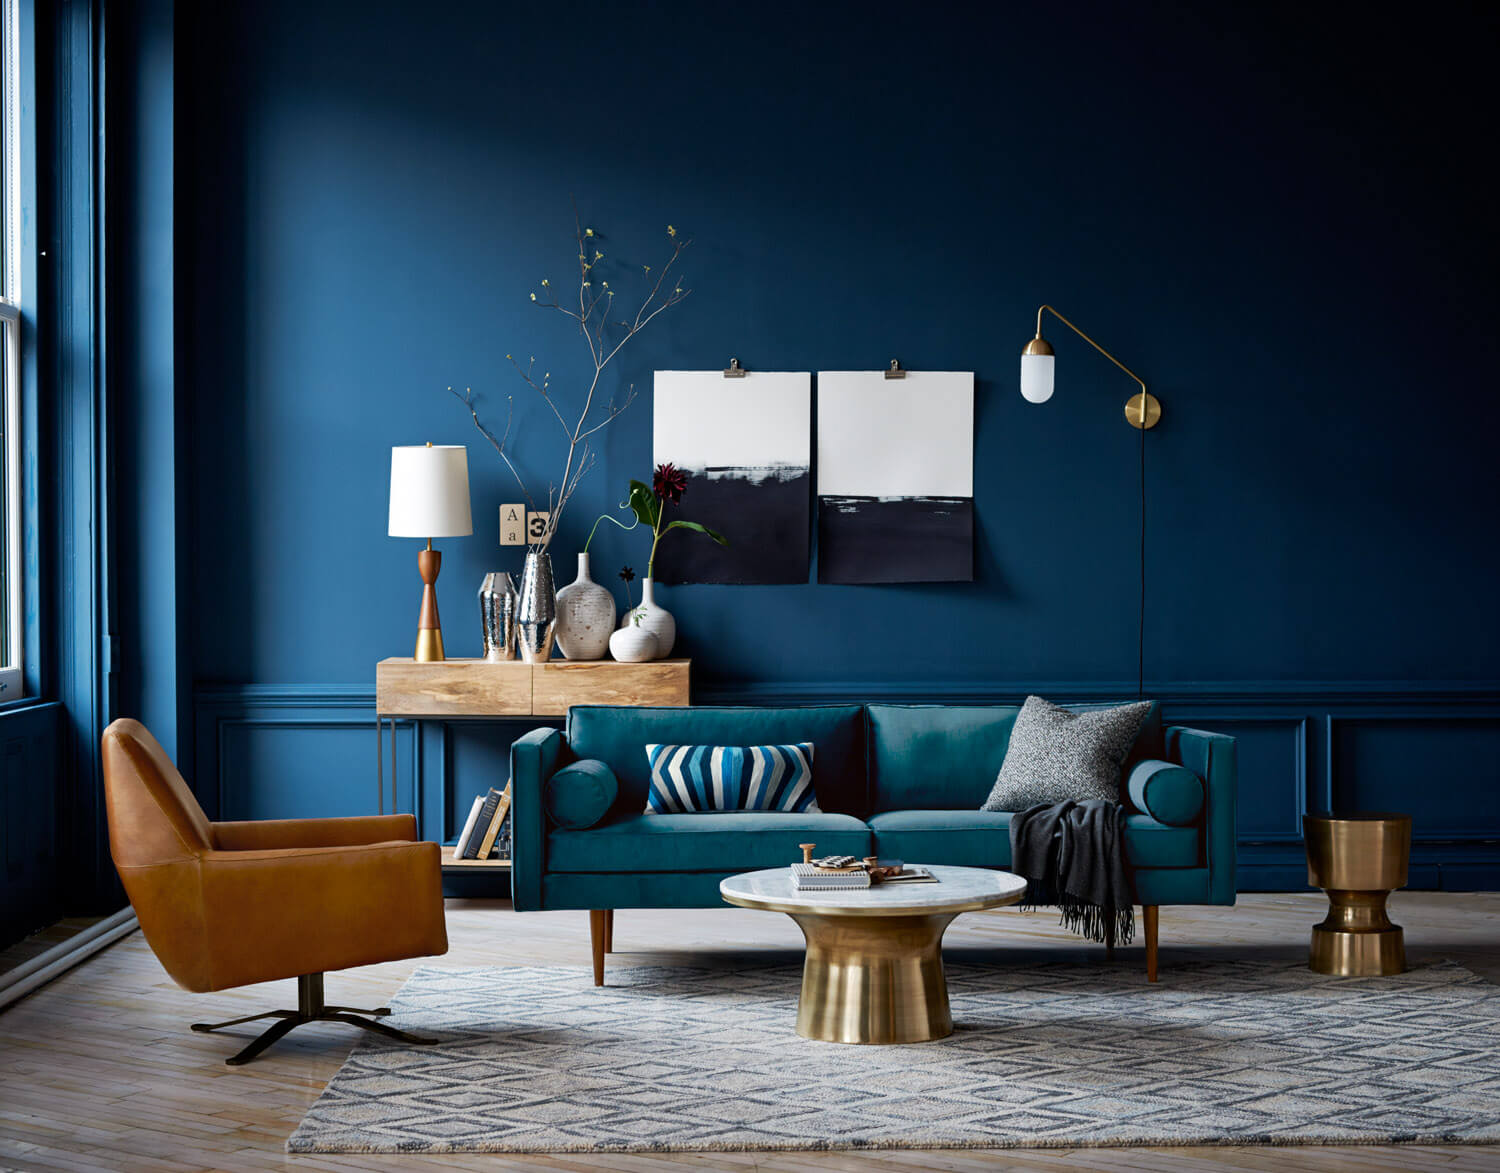 NONAGON-style-n9s-blue-walls-accent-home-decor-design-trends-2017-color-series-west-elm-decorate-blue-paint-sofa-art-decoratives-leather-.jpg